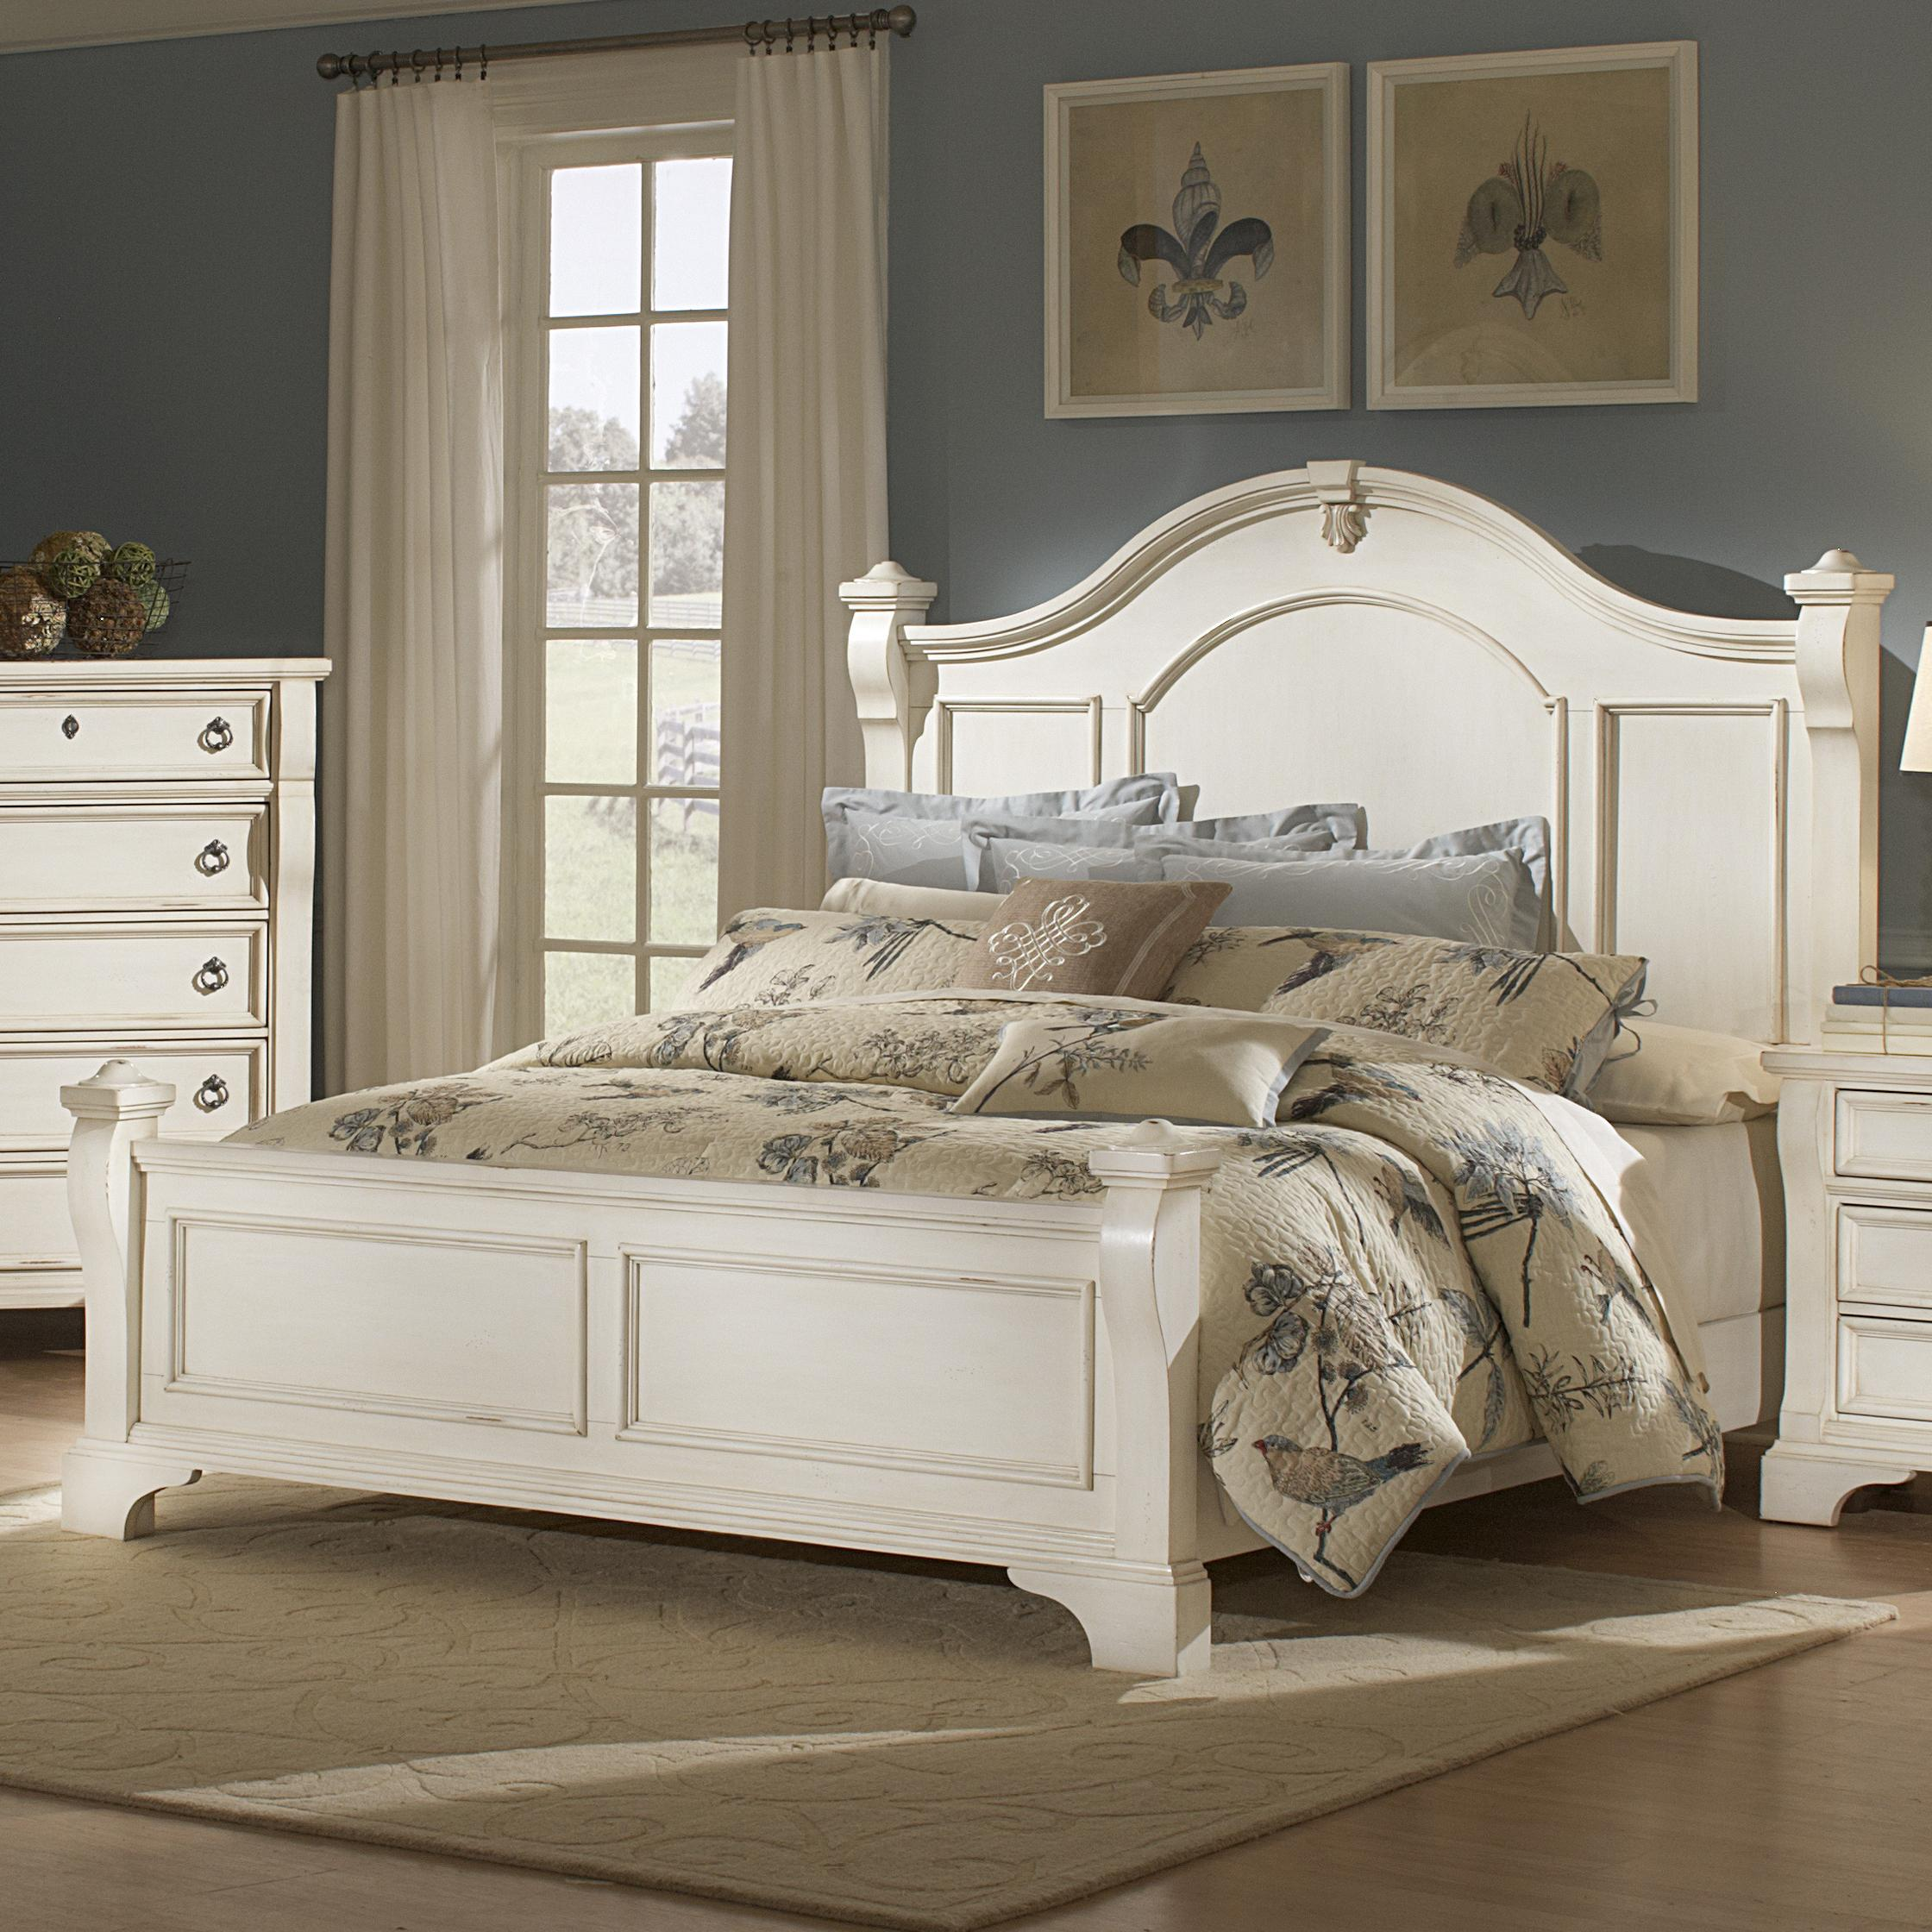 American Woodcrafters Heirloom King Poster Bed - Item Number: 2910-66POS